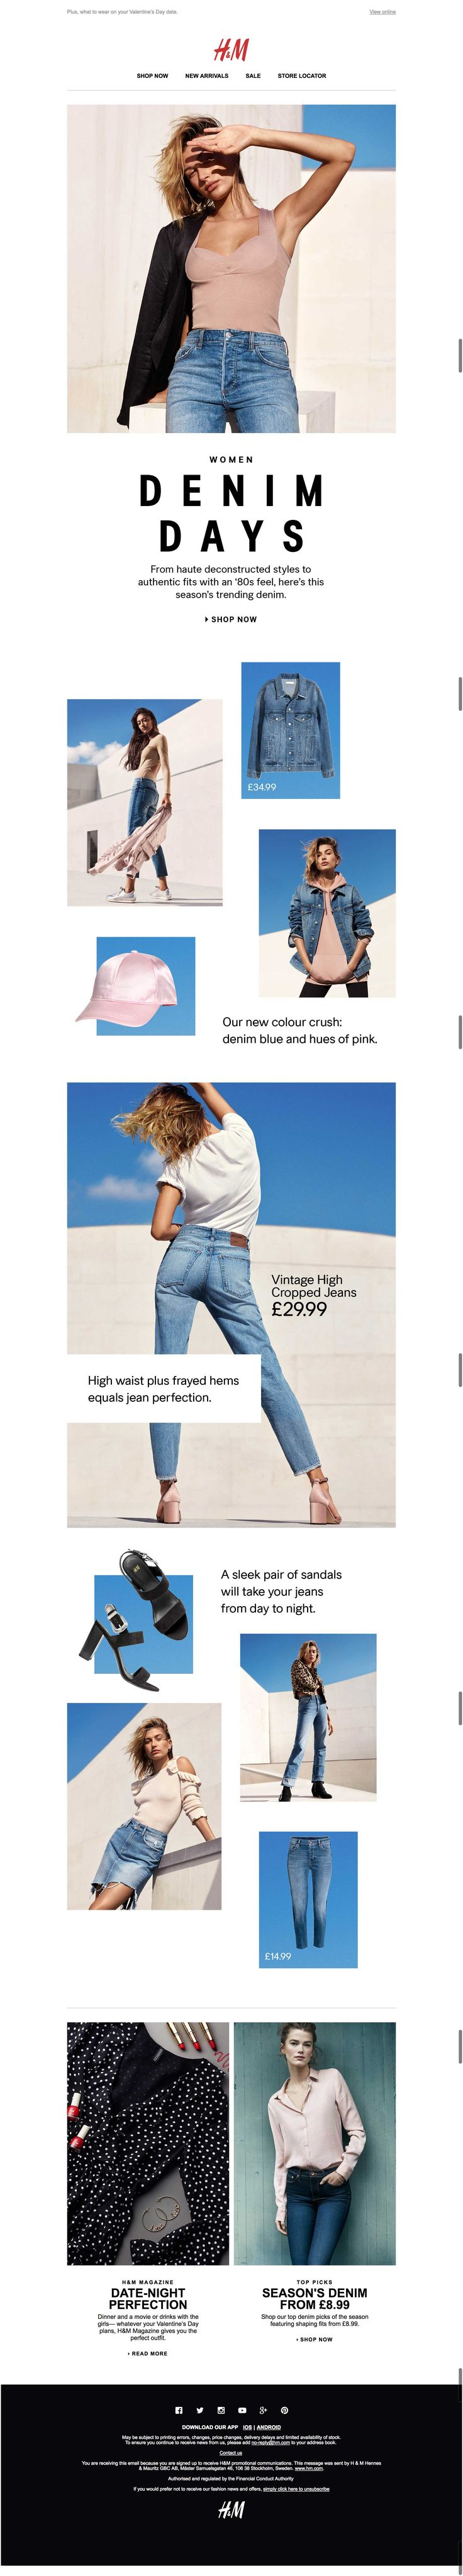 denim days email from h and m